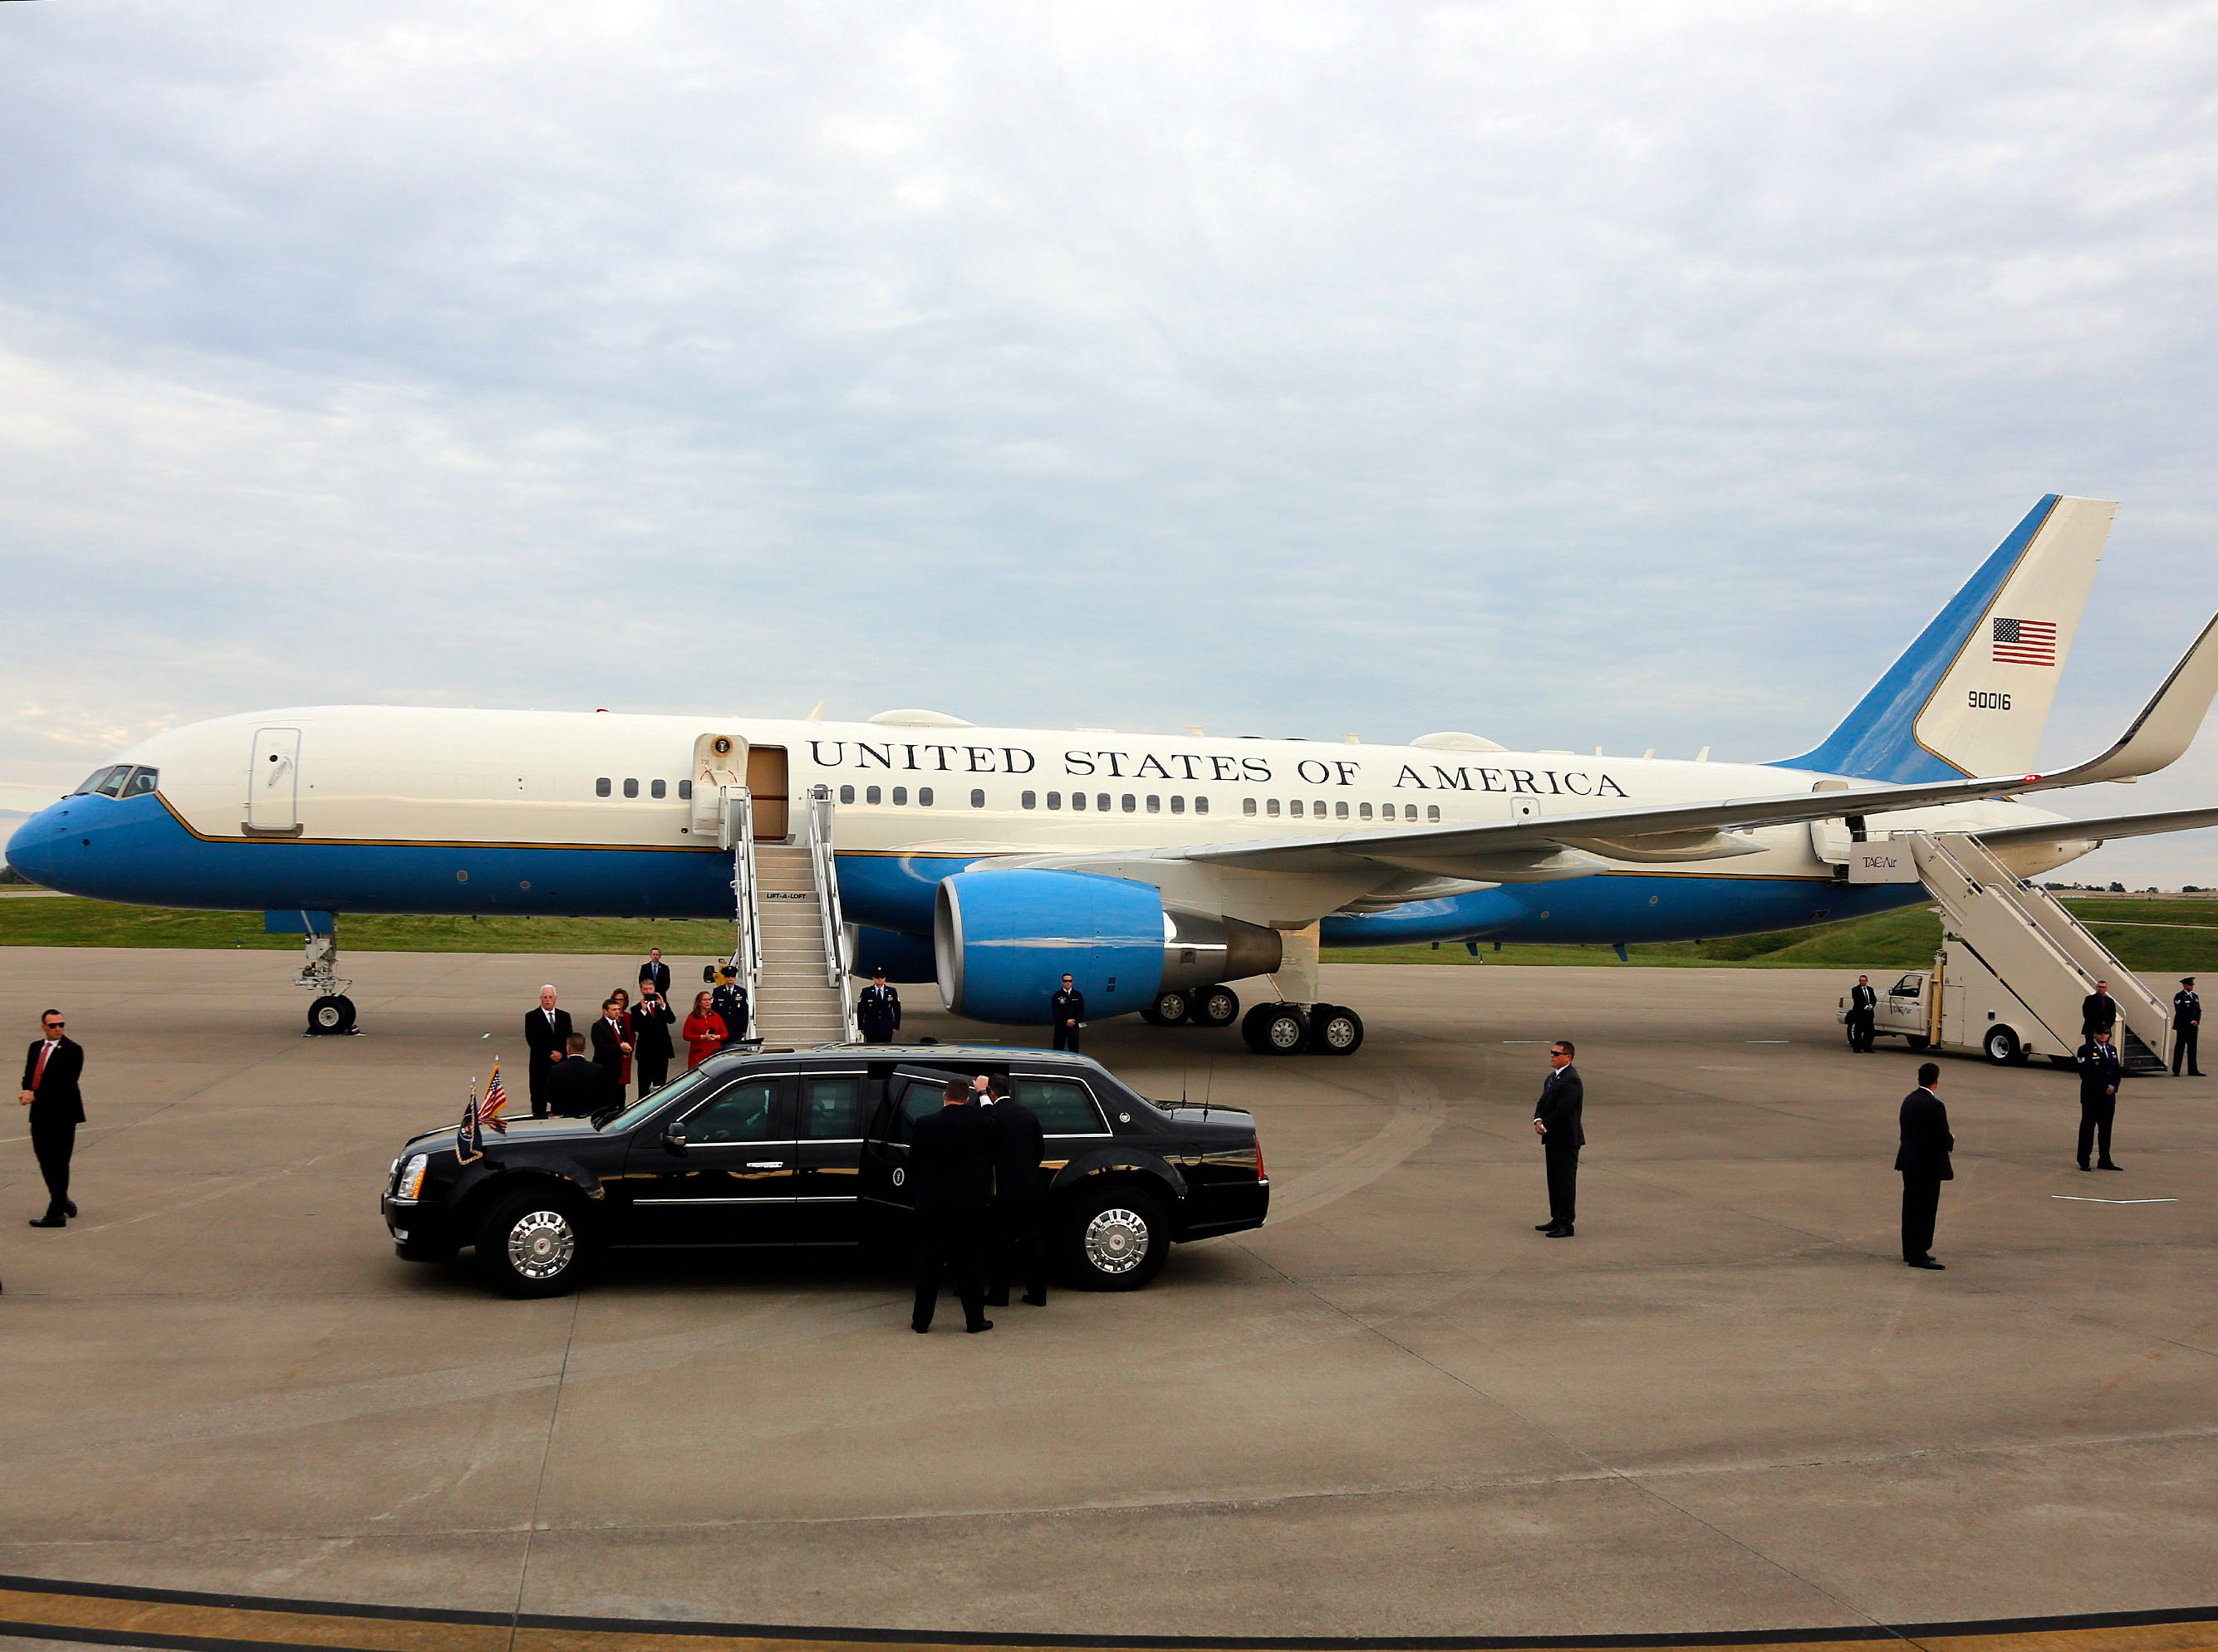 The Presidental limo prepares to leave with Pres.Trump, Sen. Mitch McConnell and Gov. Bevin near Air Force One at Bluegrass Airport in Lexington, Oct. 13, 2018.